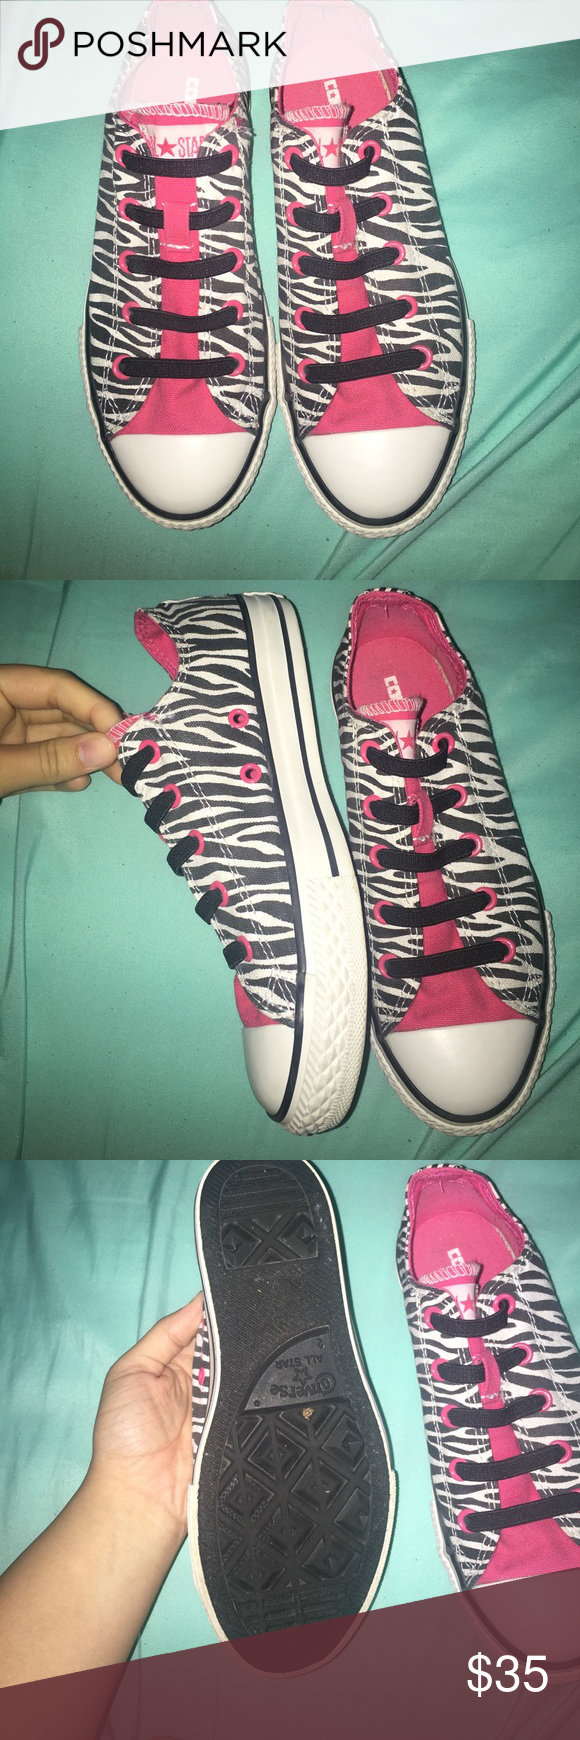 Pink zebra youth converse shoes pink and sneakers